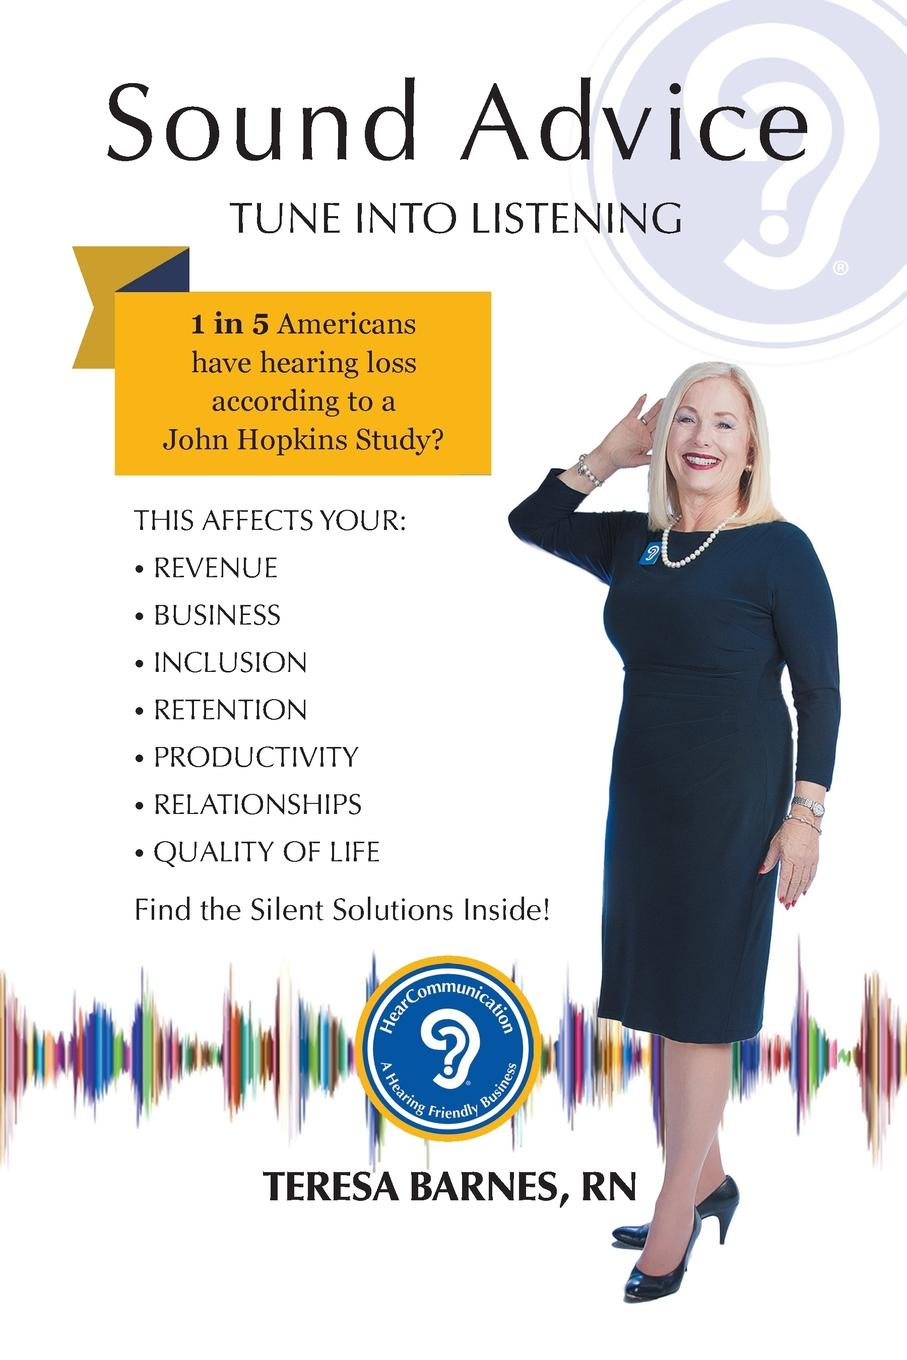 Teresa Barnes RN Sound Advice. Tune into Listening pocket hearing aid deaf aid sound audiphone voice amplifier digital sound amplifier ear amplifier hearing aids for elderly s 7b